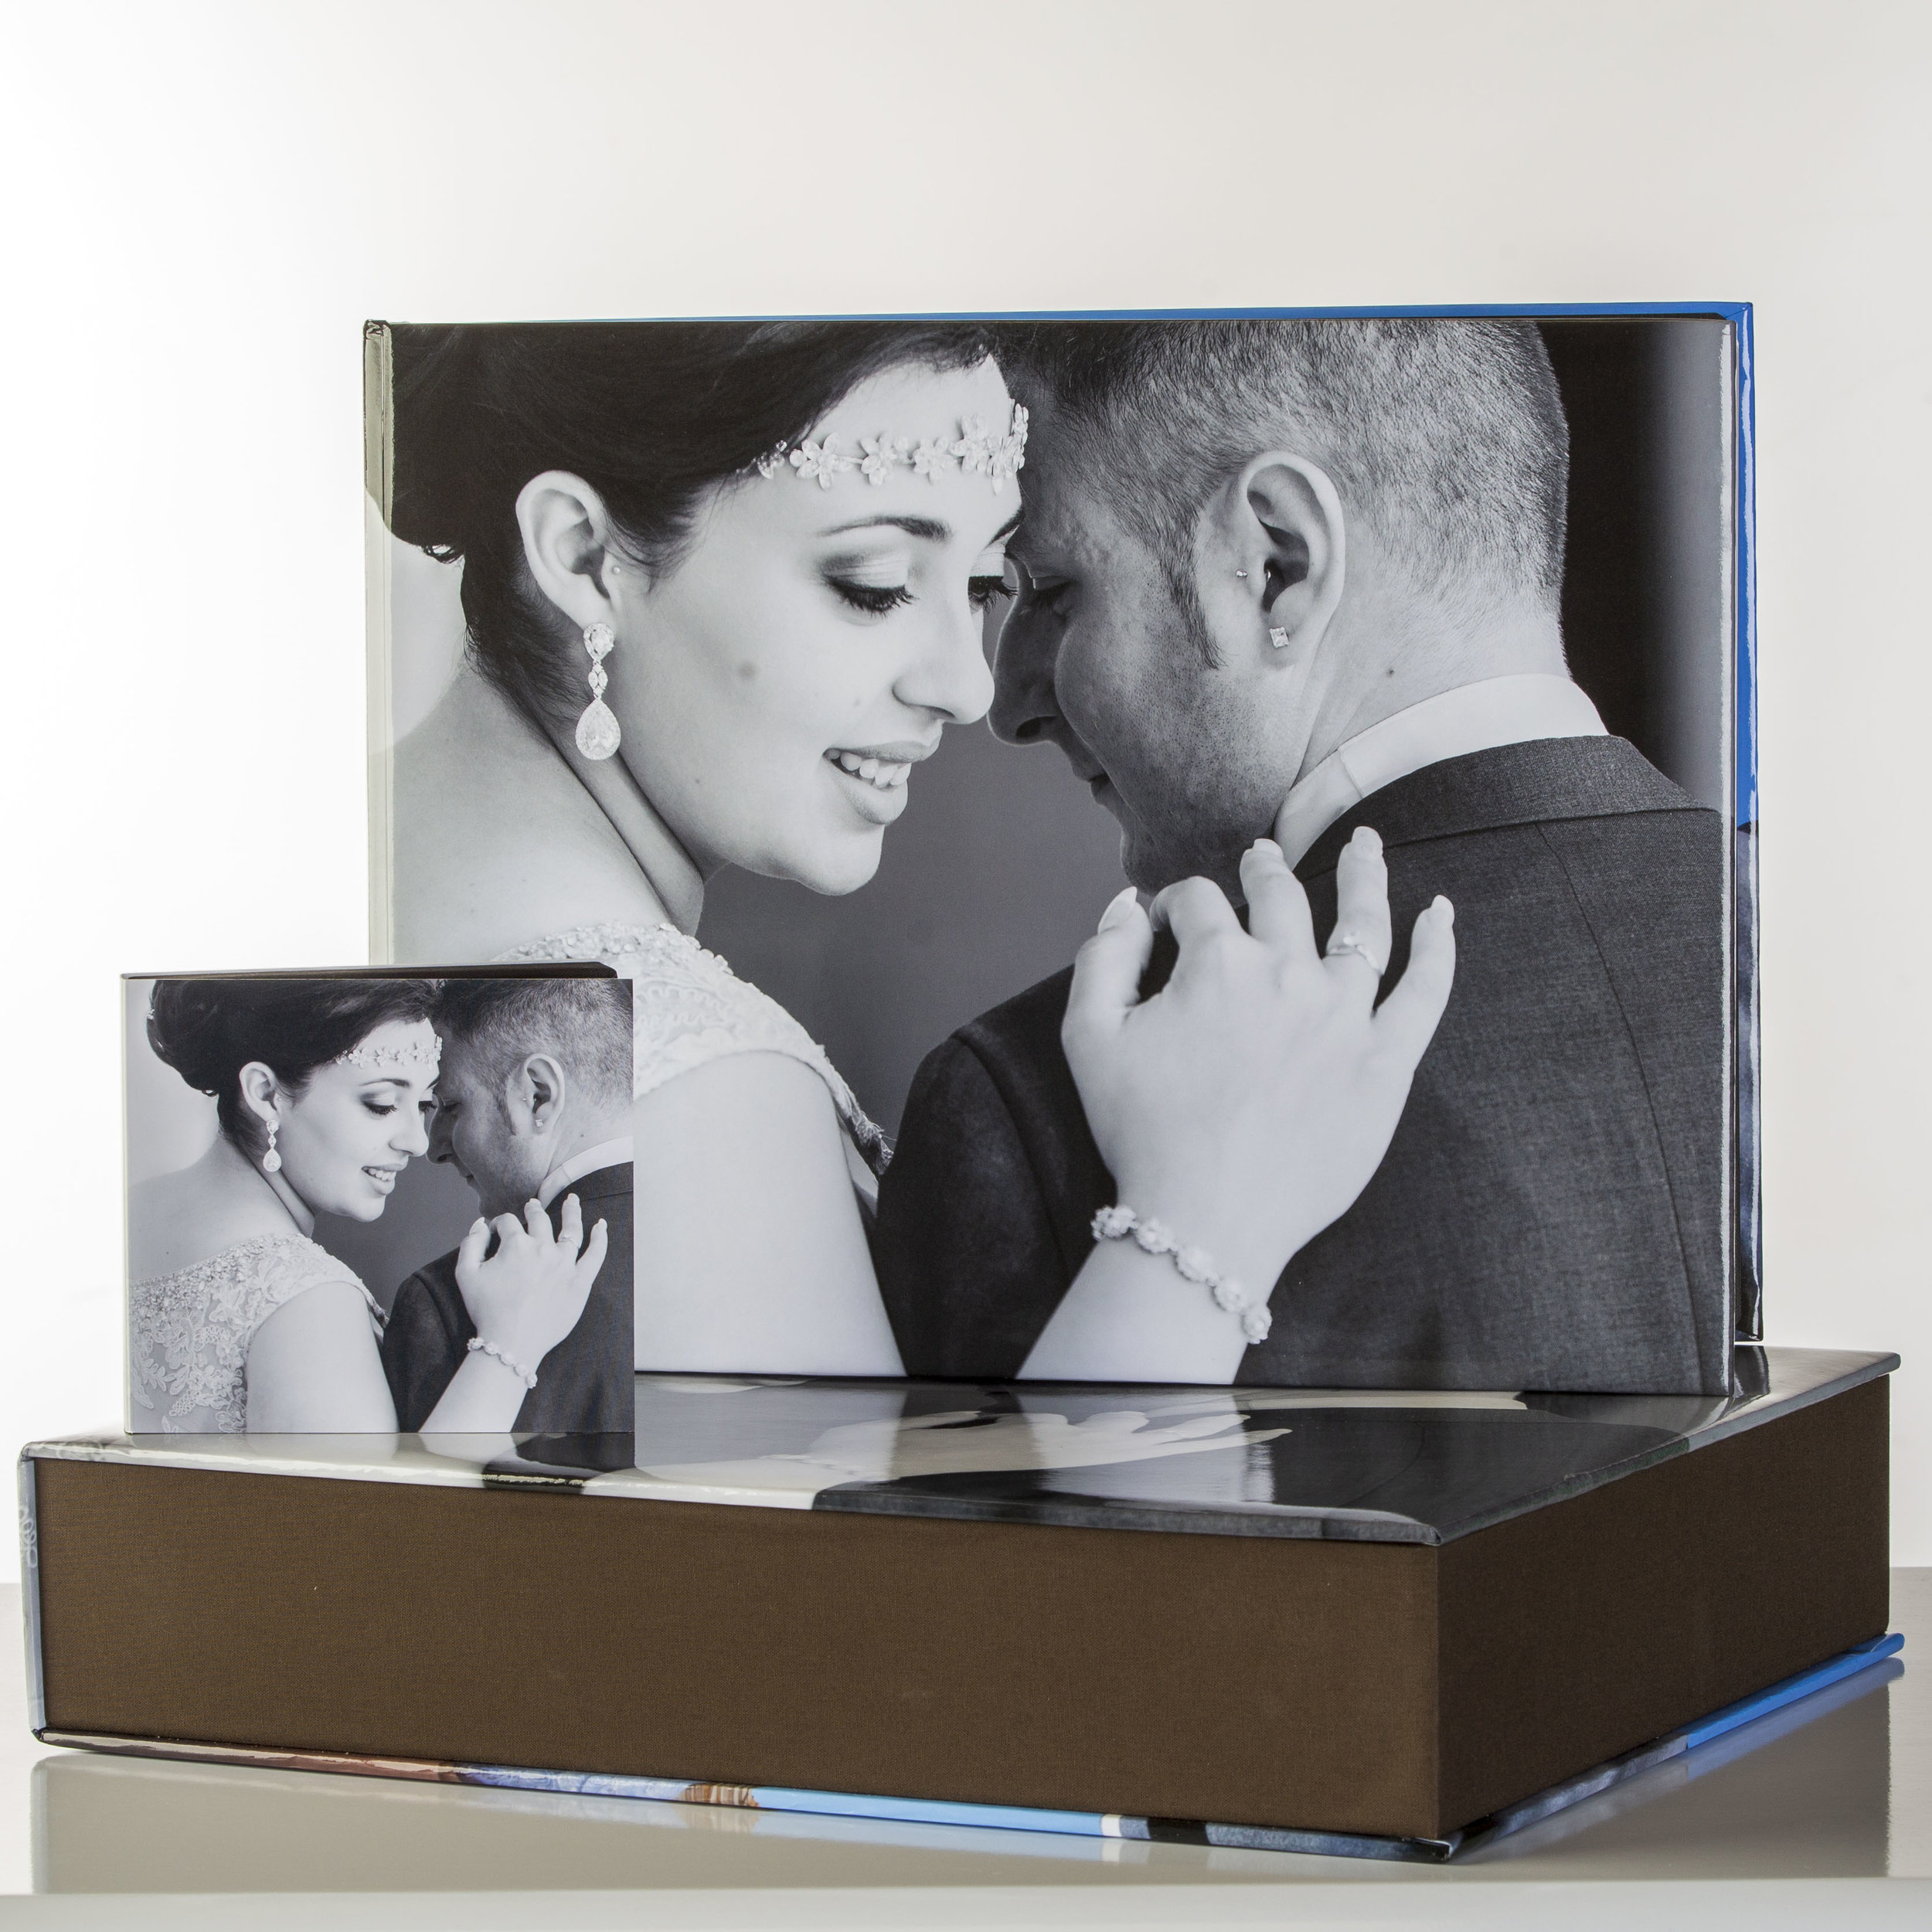 Wedding Book - Sizes:8x8, 10x10, 12x12, 12x16, 12x18Cover Materials:Leather, Acrylic, Image Wrap Around, Leatherette, and TextureOther Options:Personalised Box & USB Stick